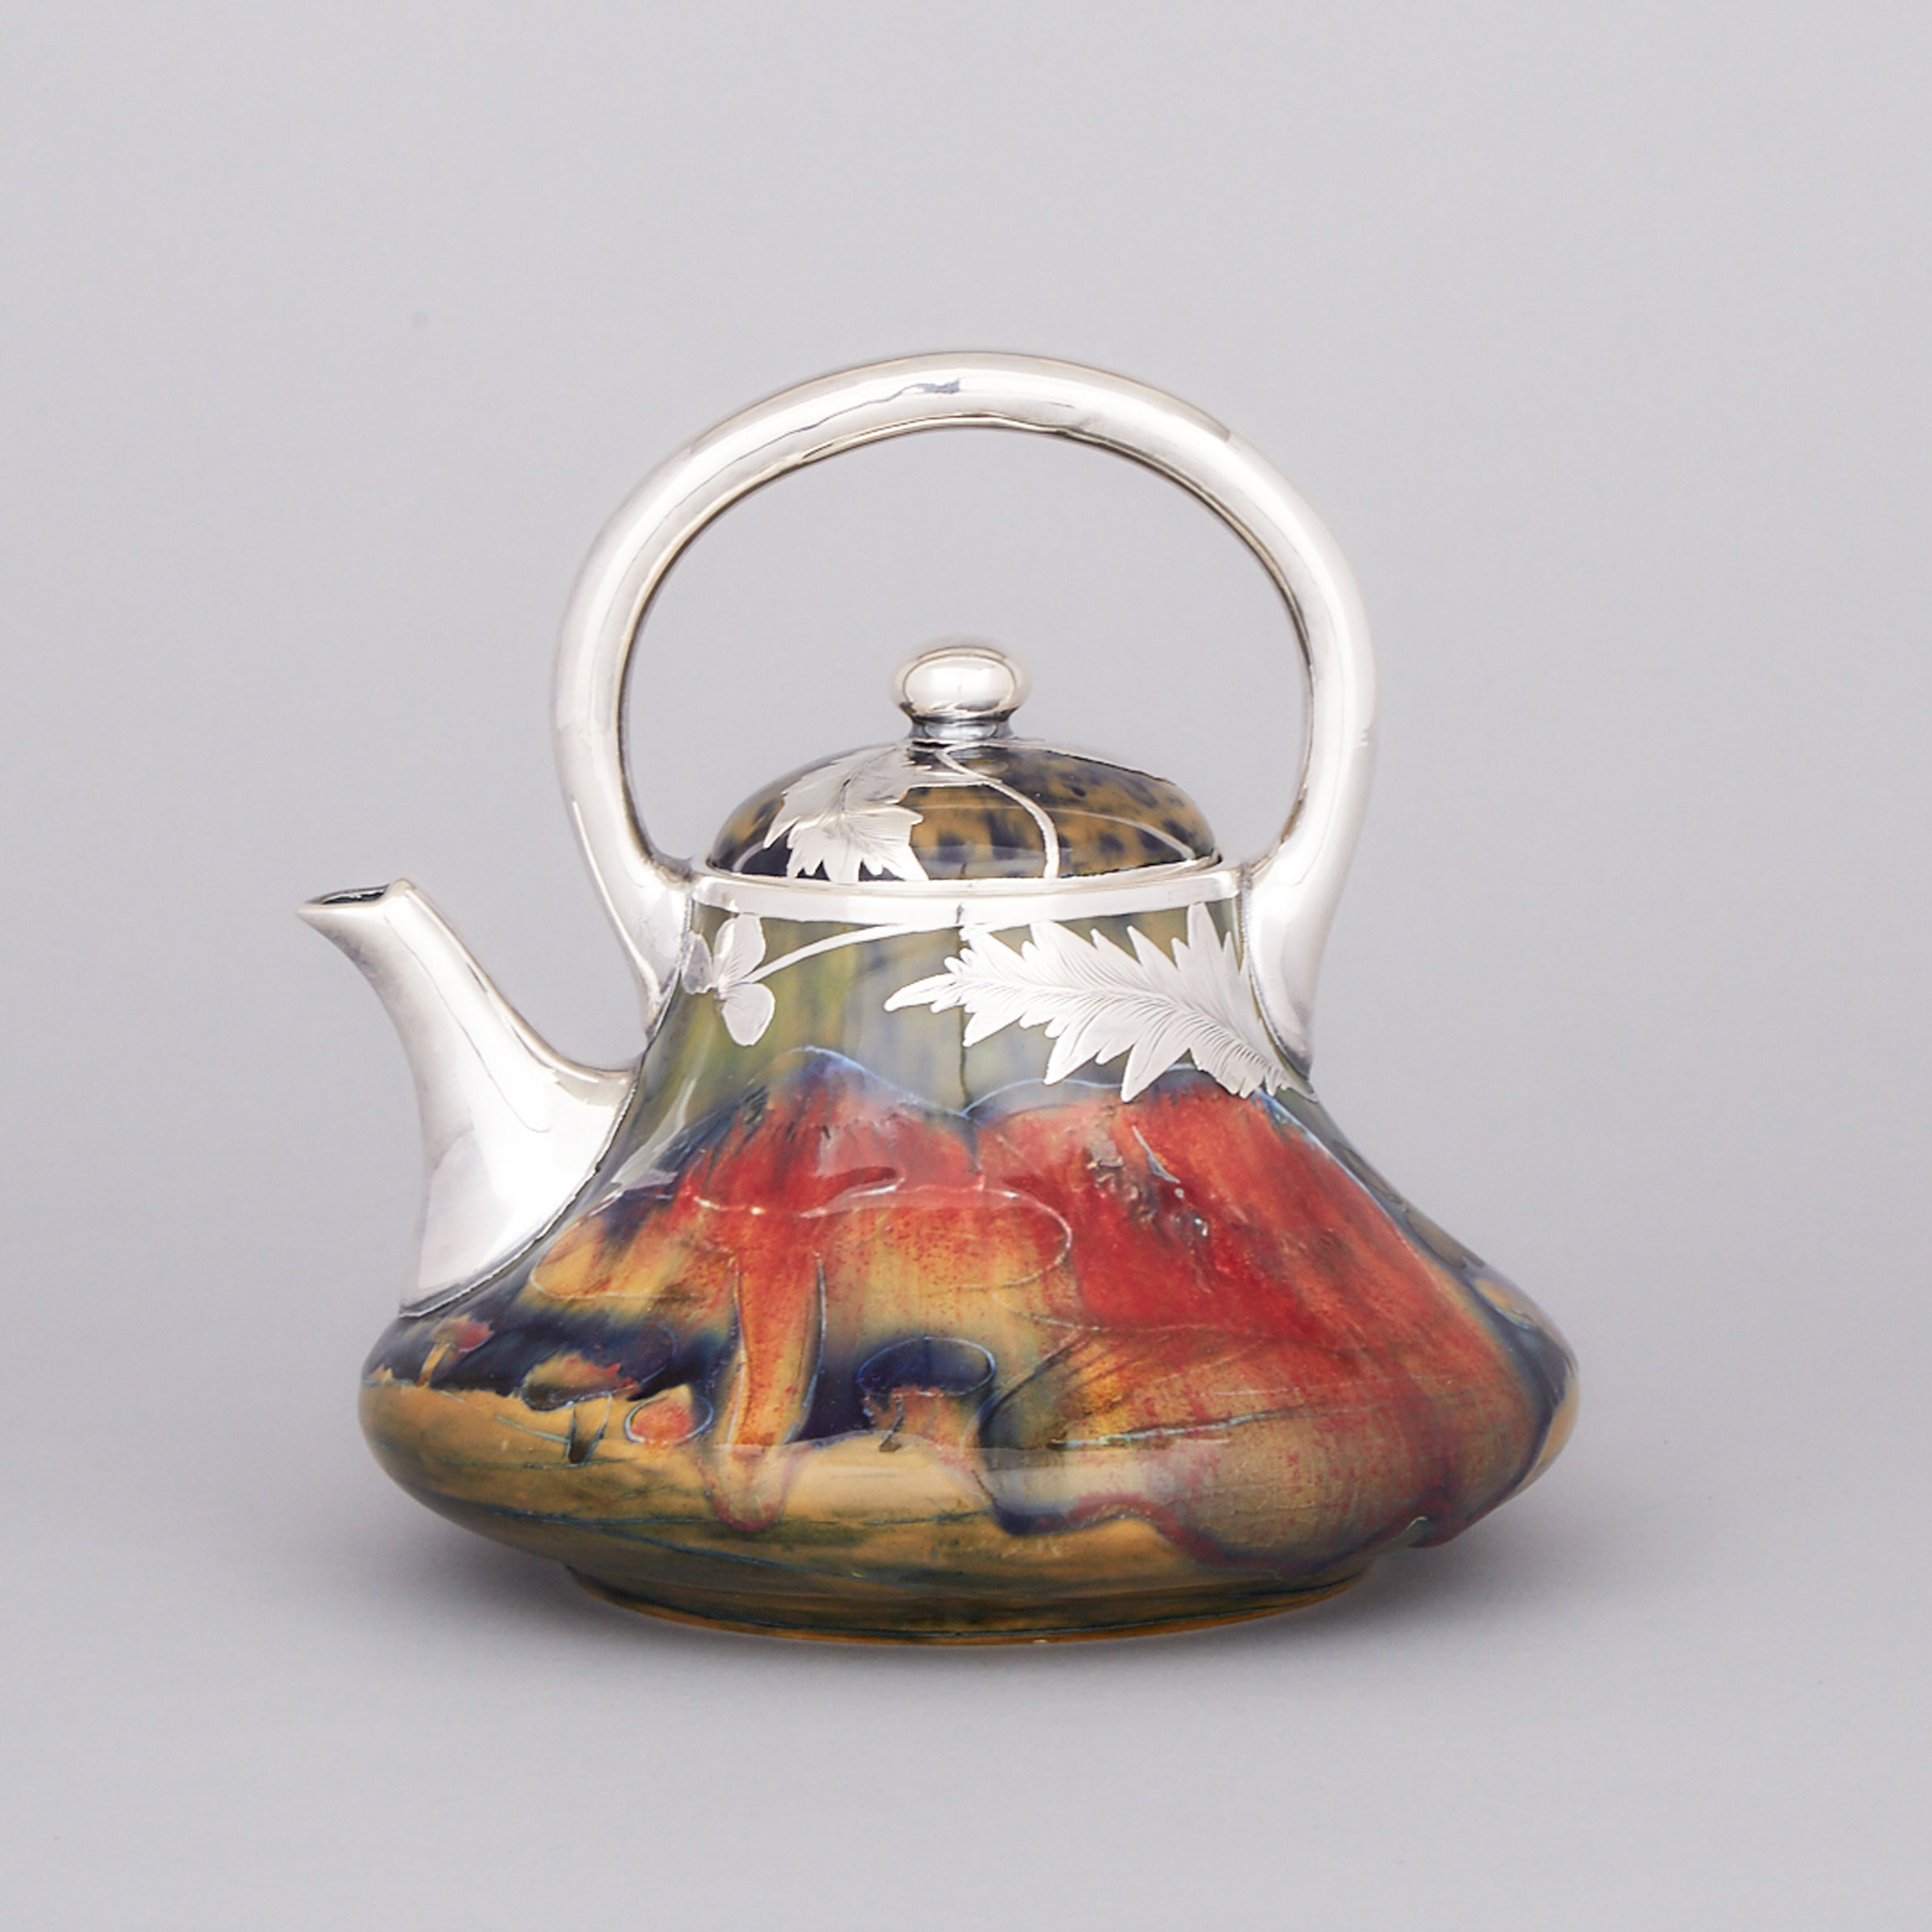 Macintyre Moorcroft Silver Overlaid Claremont Teapot, c.1905